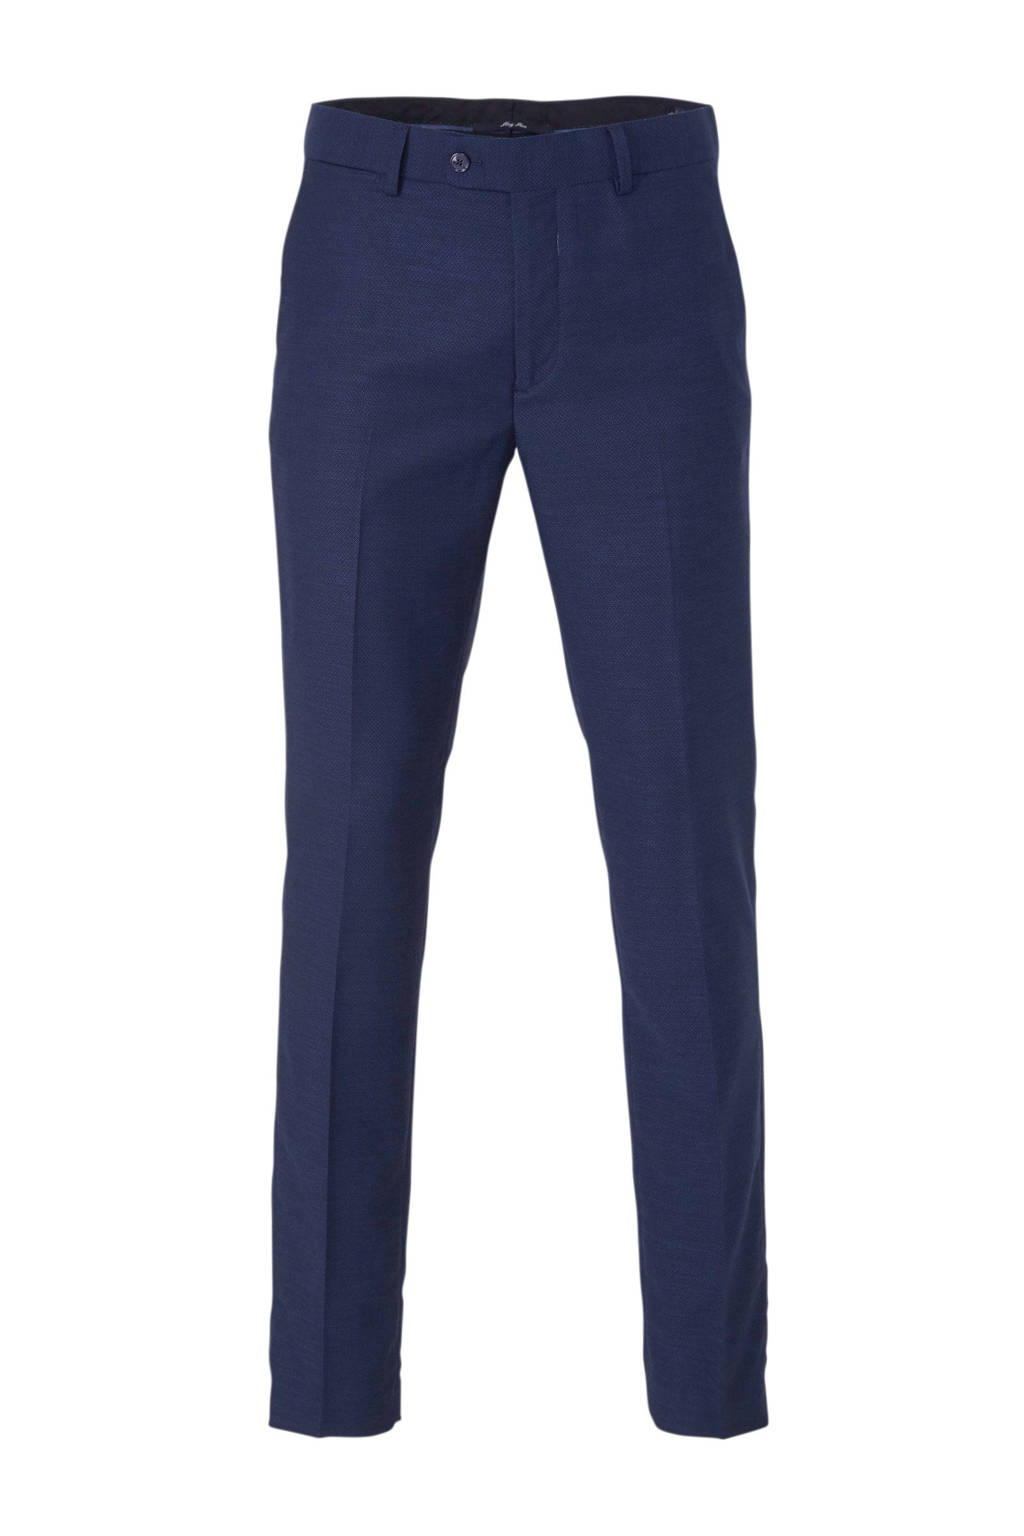 Mango Man regular fit pantalon donkerblauw, Donkerblauw